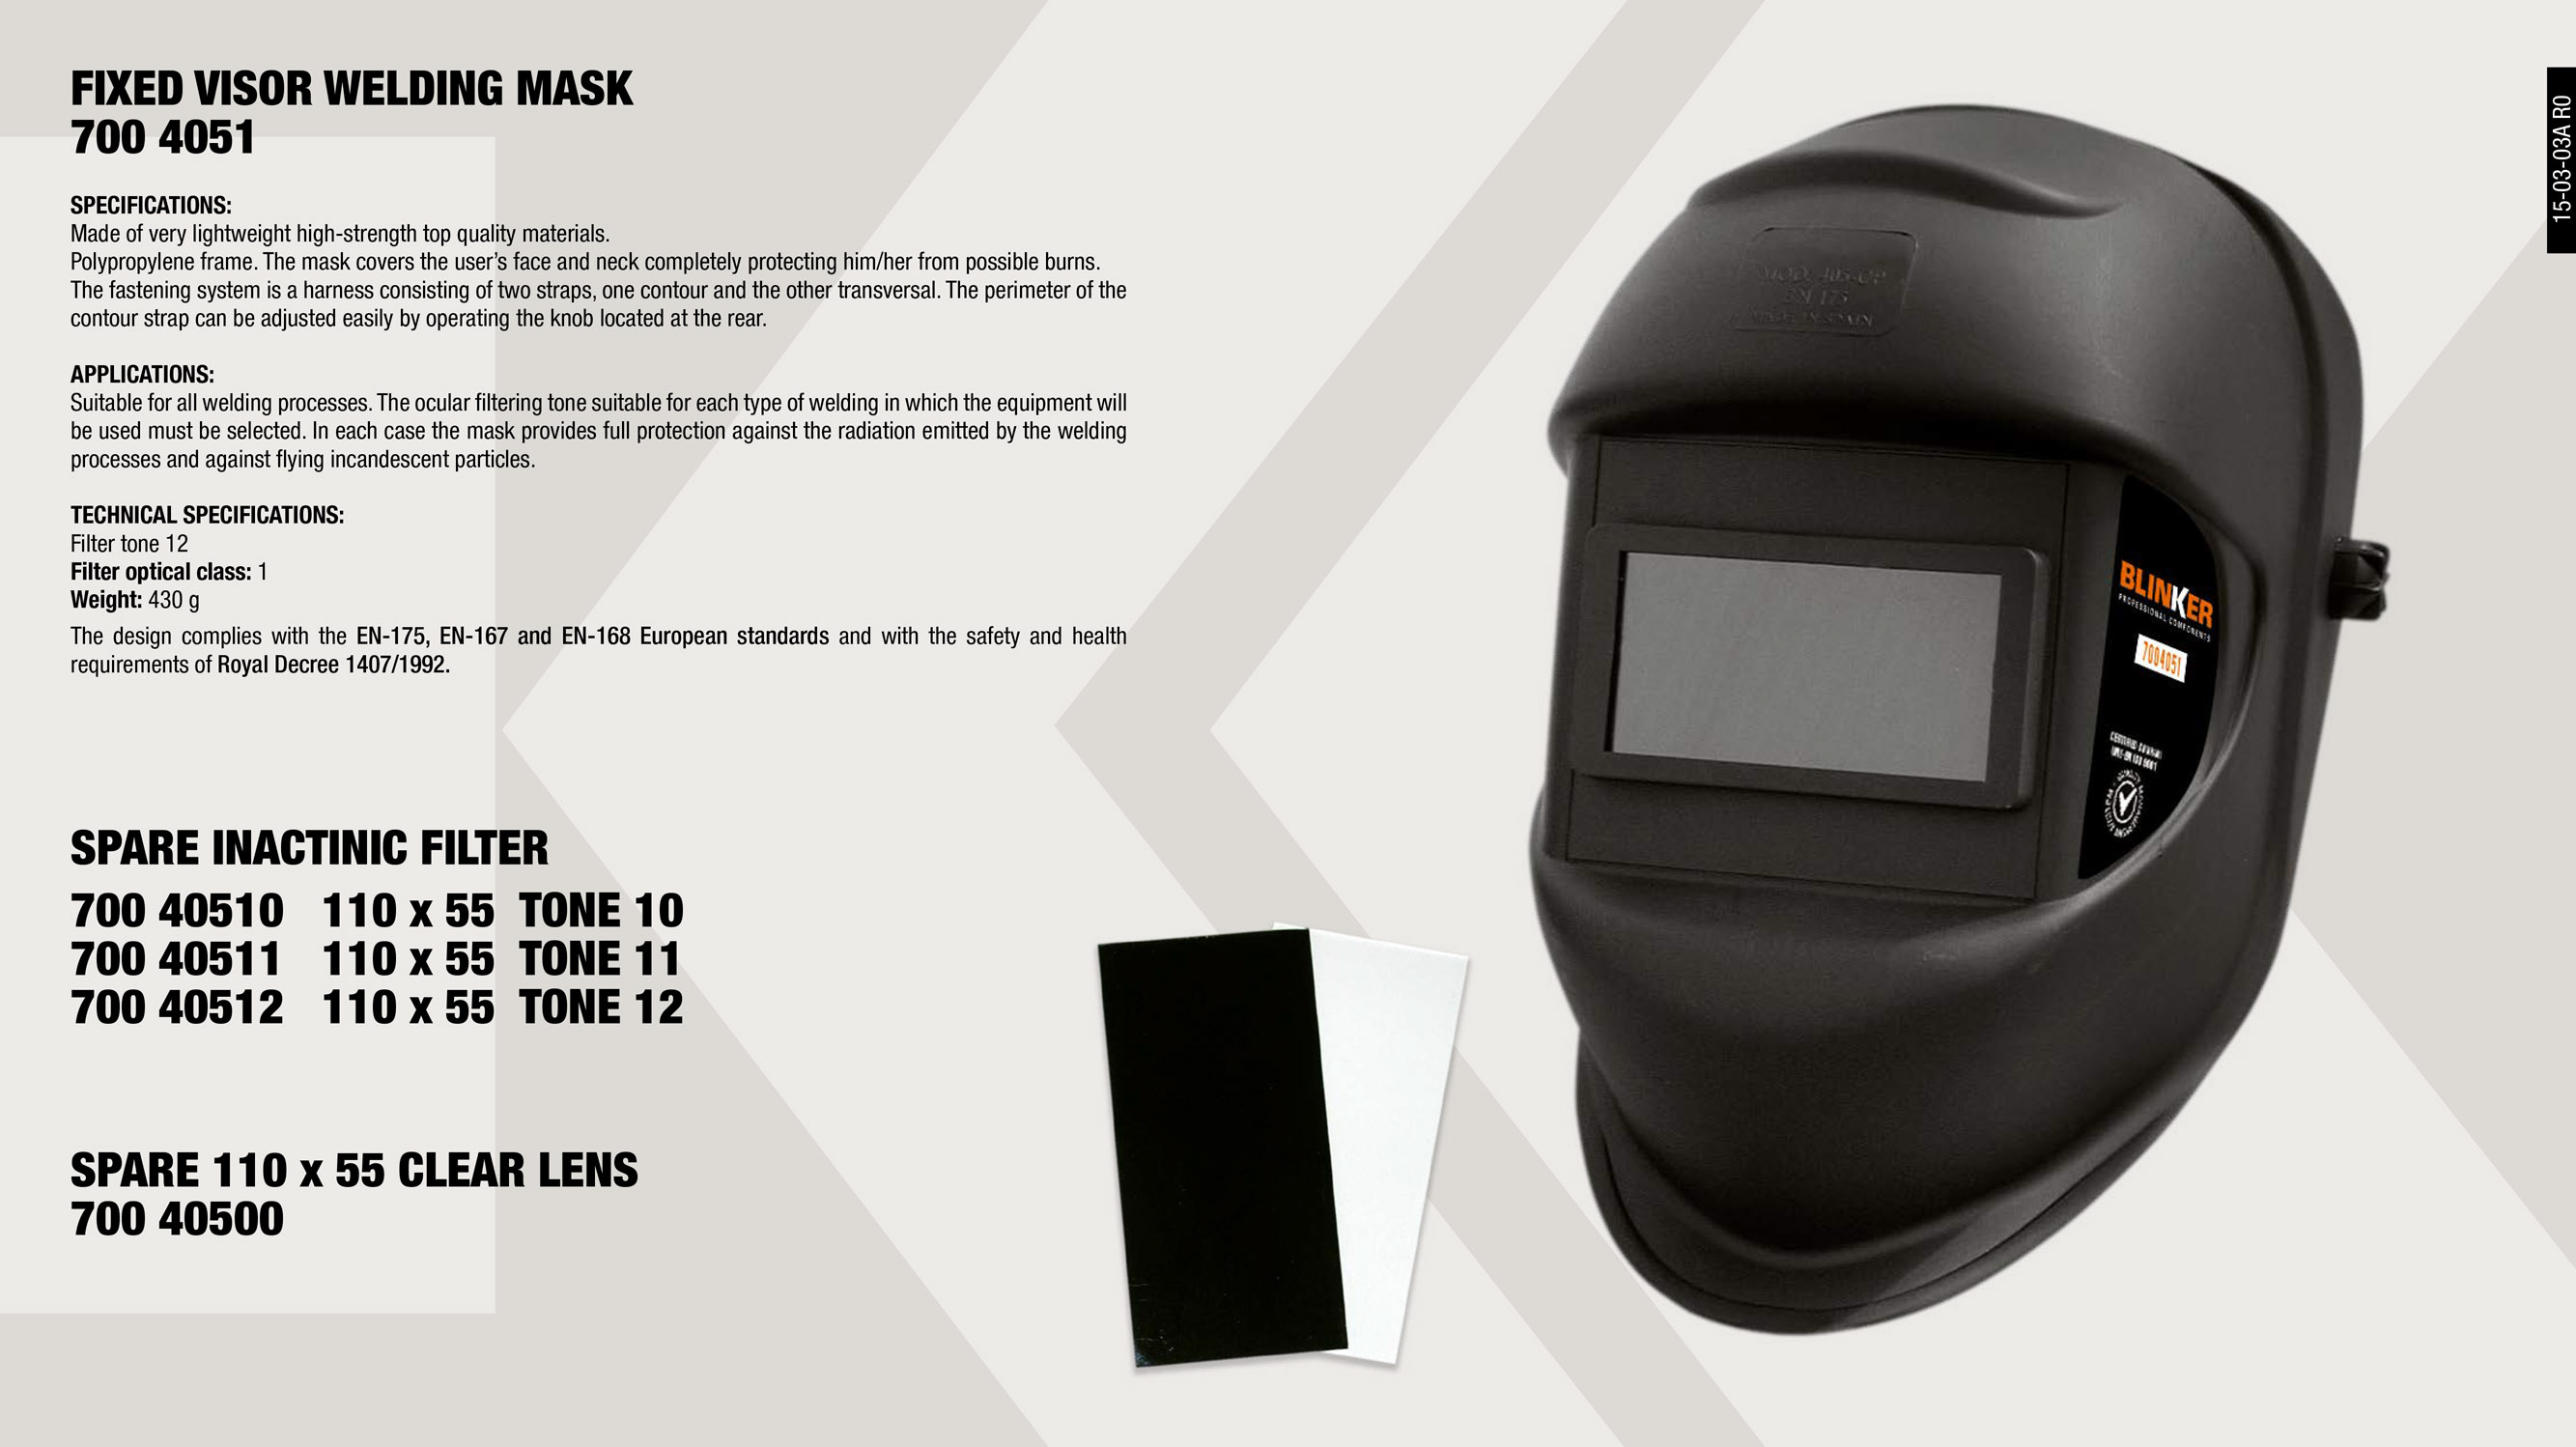 LATEX DISPOSABLE GLOVES S-8 1/2                             ,  LATEX DISPOSABLE GLOVES S-7 1/2                             ,  LATEX DISPOSABLE GLOVES S-9 1/2                             ,